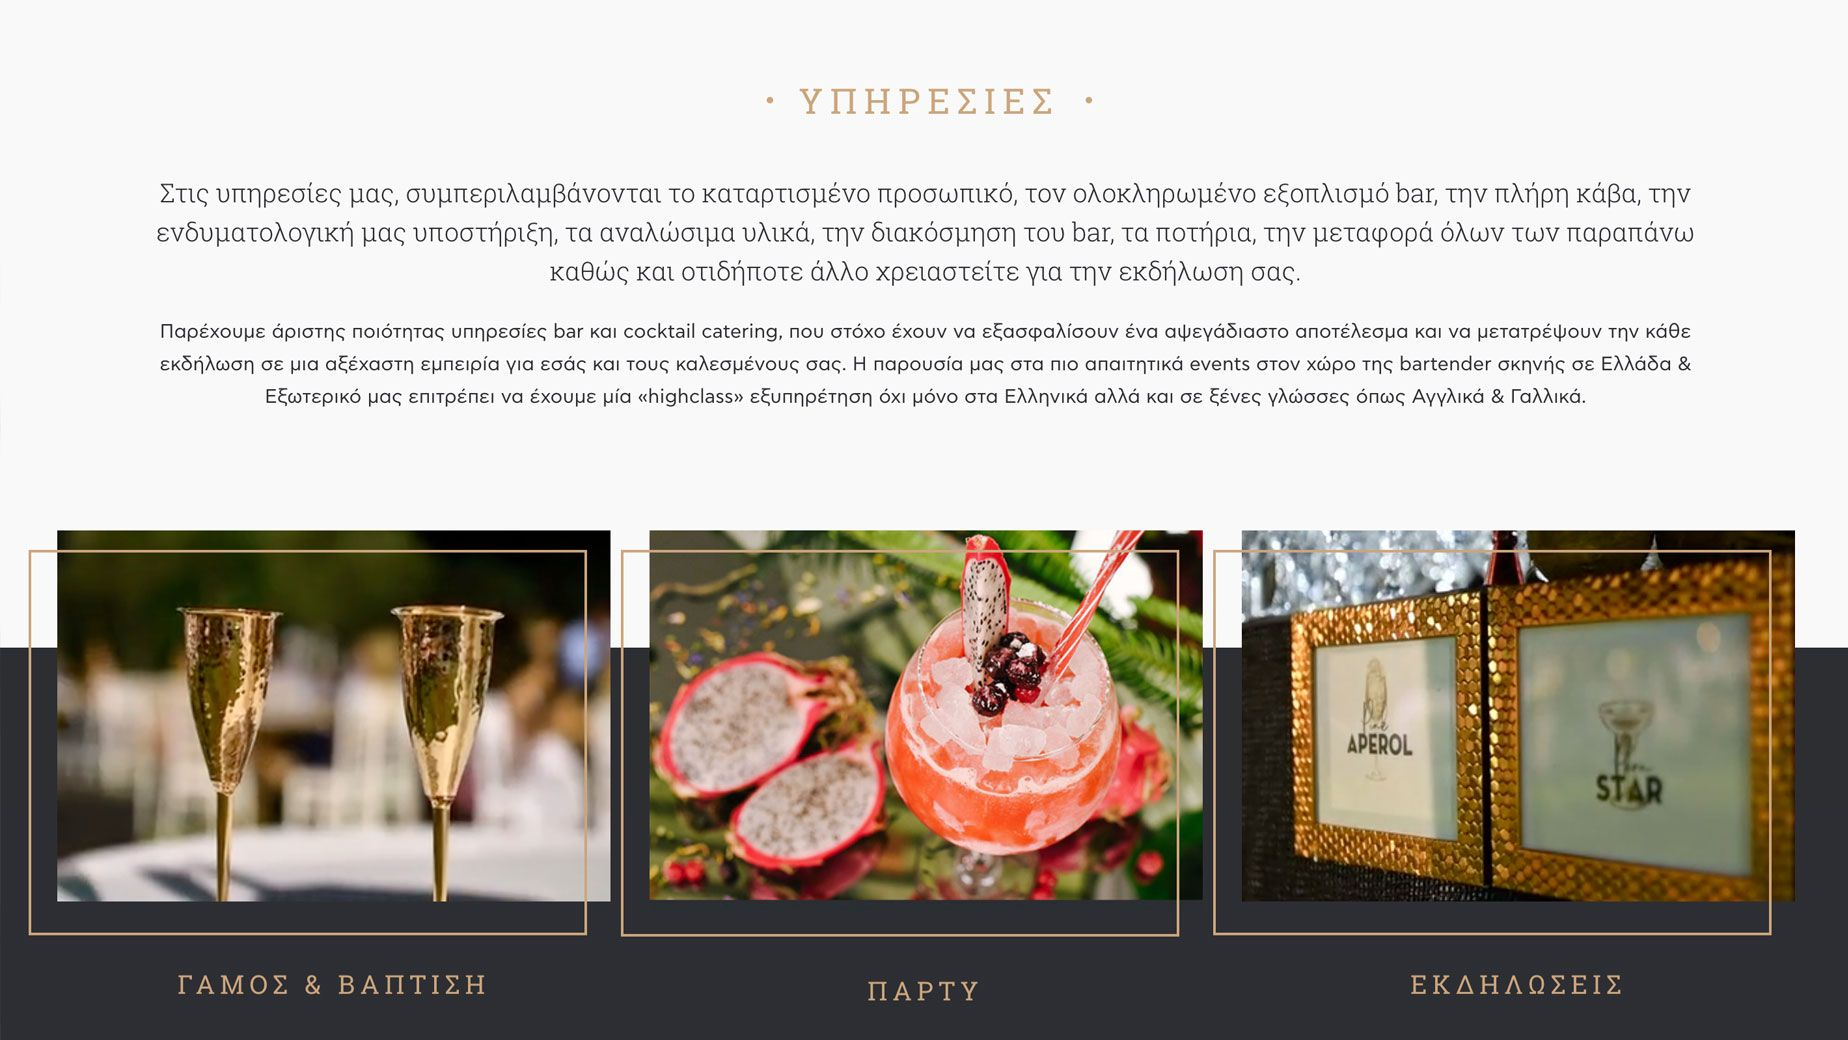 Website Korinthos Cocktail Catering